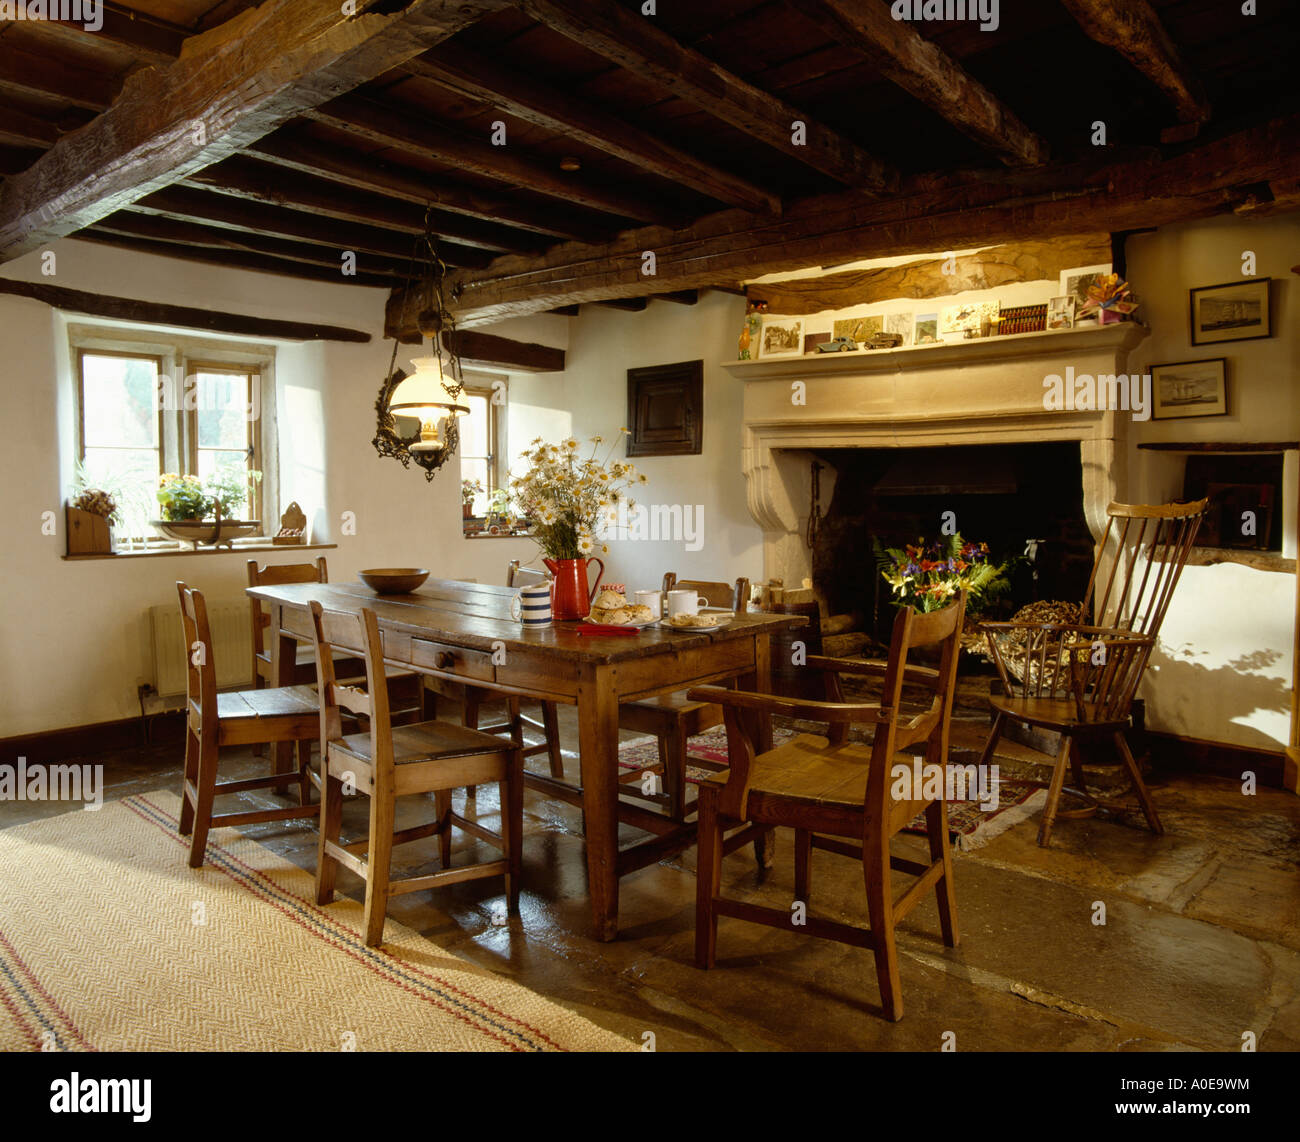 Chairs And Table In Front Of Fireplace Country Diningroom